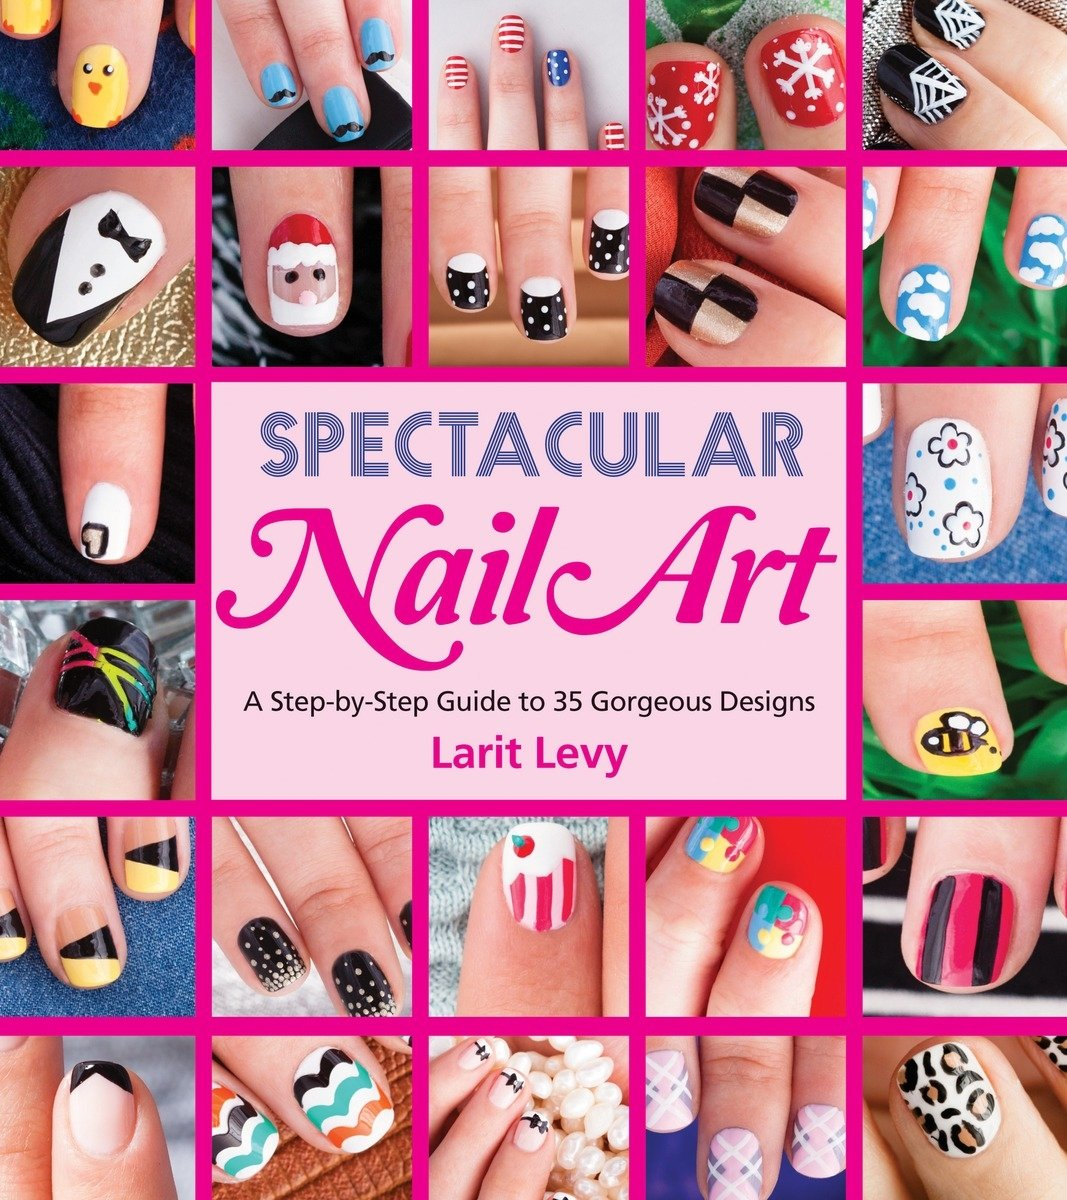 Amazon.com: Spectacular Nail Art: A Step-by-Step Guide to 35 ...